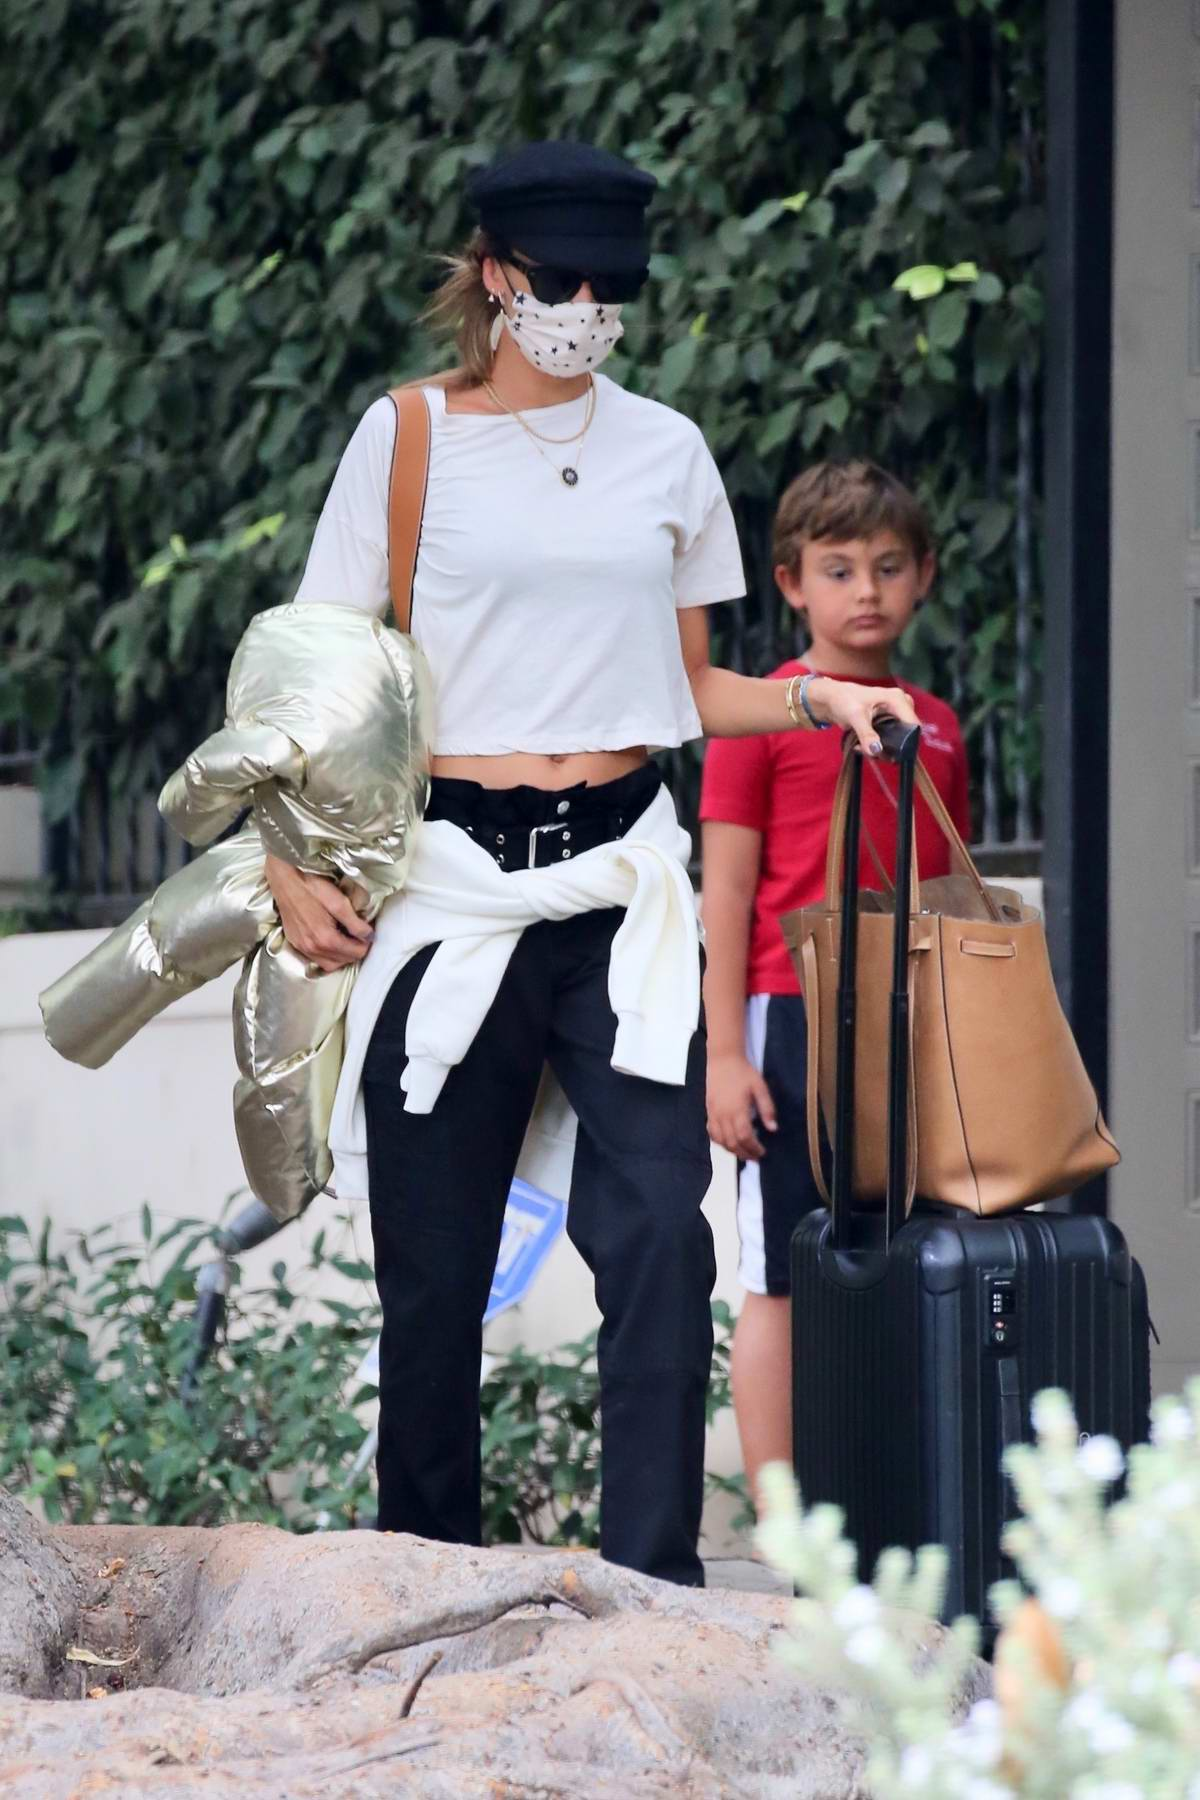 Alessandra Ambrosio keeps things casual while heading out for the airport in Los Angeles